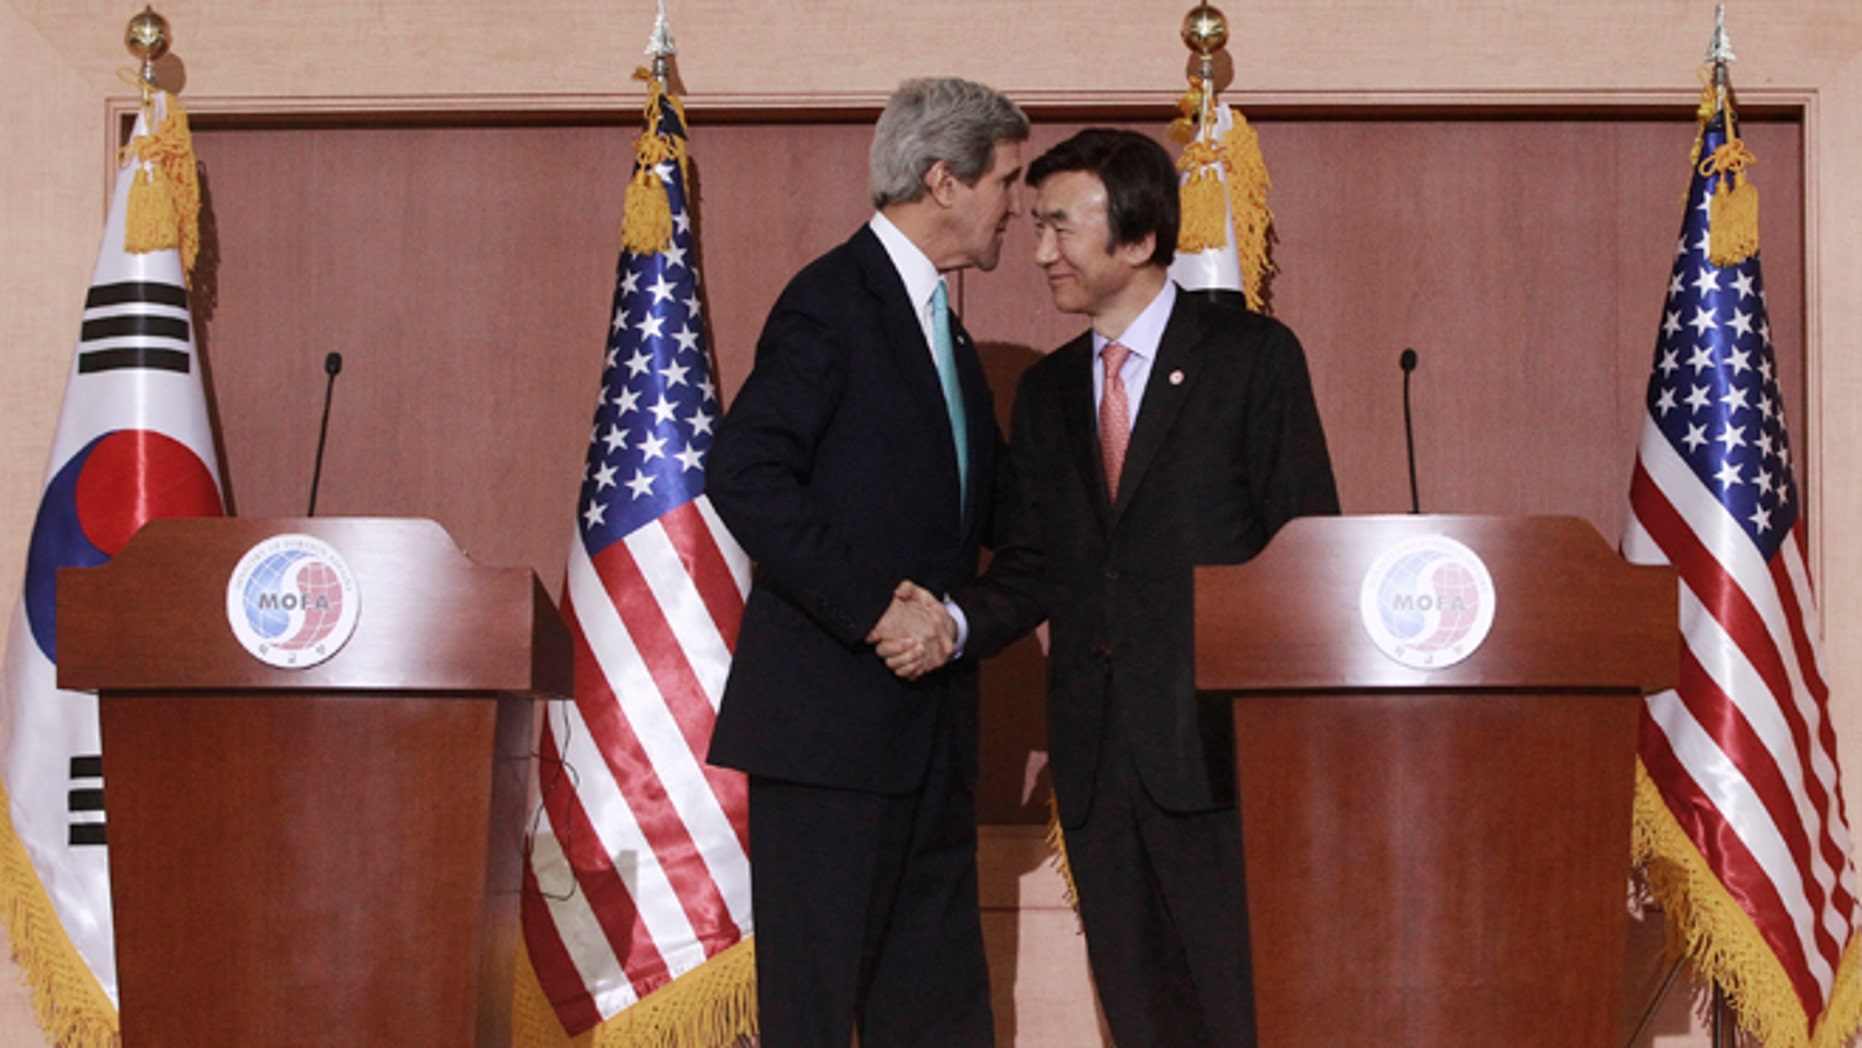 Feb. 14, 2014: U.S. Secretary of State John Kerry, left, shakes hands with South Korean Foreign Minister Yun Byung-se at the end of their press conference at the Foreign Ministry in Seoul, South Korea.